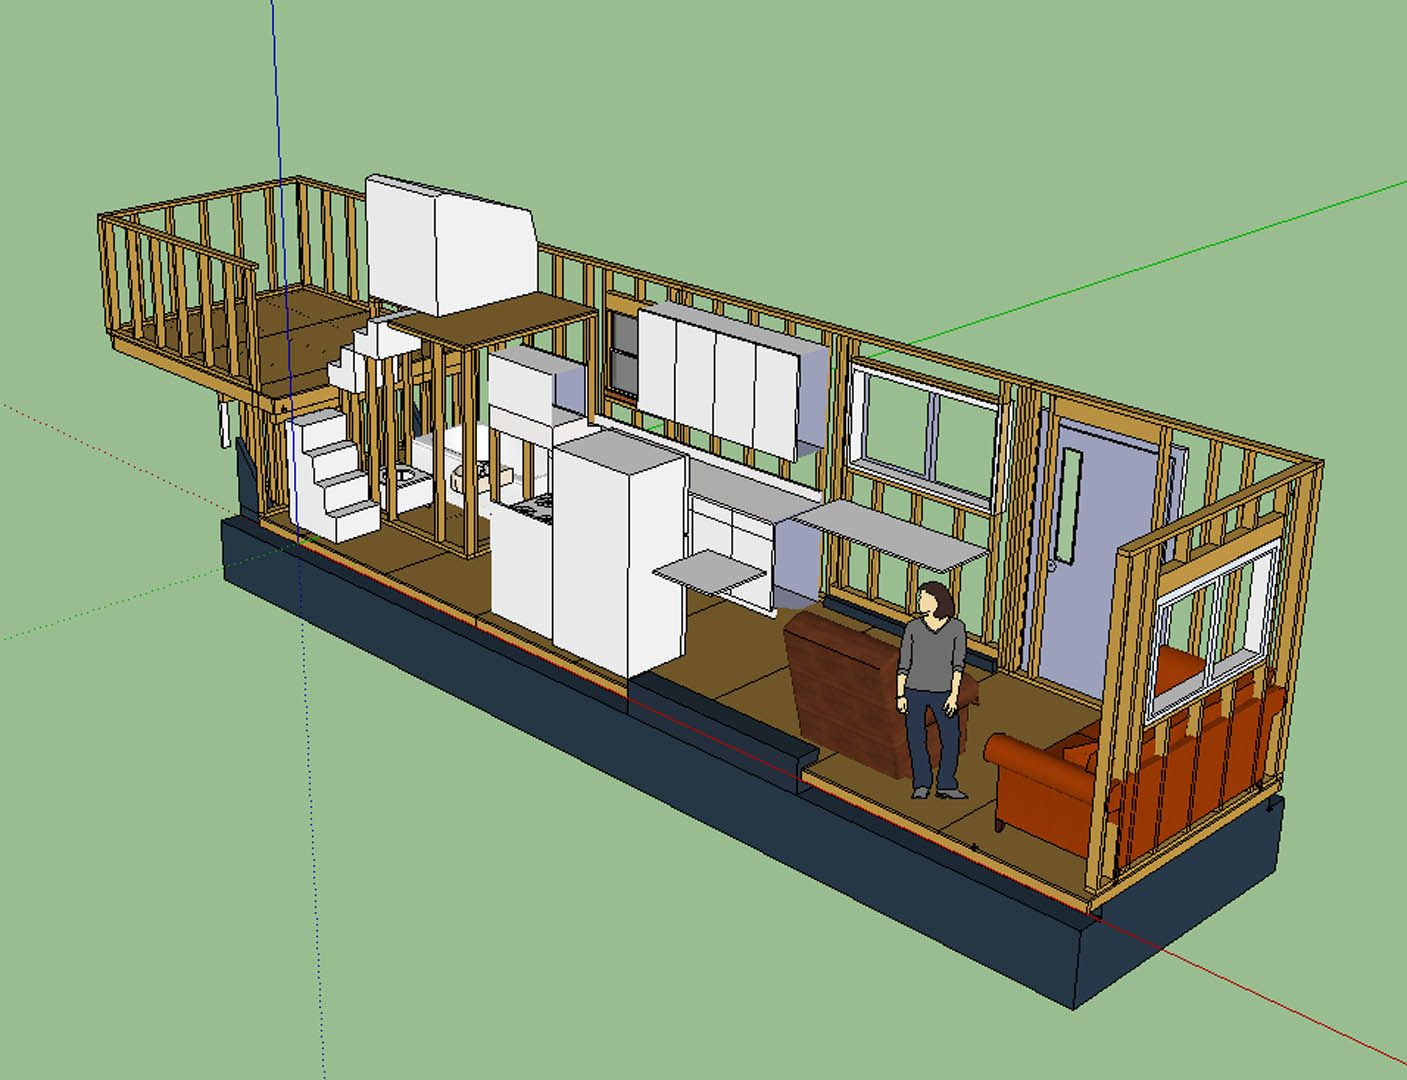 Ever Thought Of A Gooseneck Tiny House Design Tiny House Layout Tiny House Floor Plans Tiny House Plans